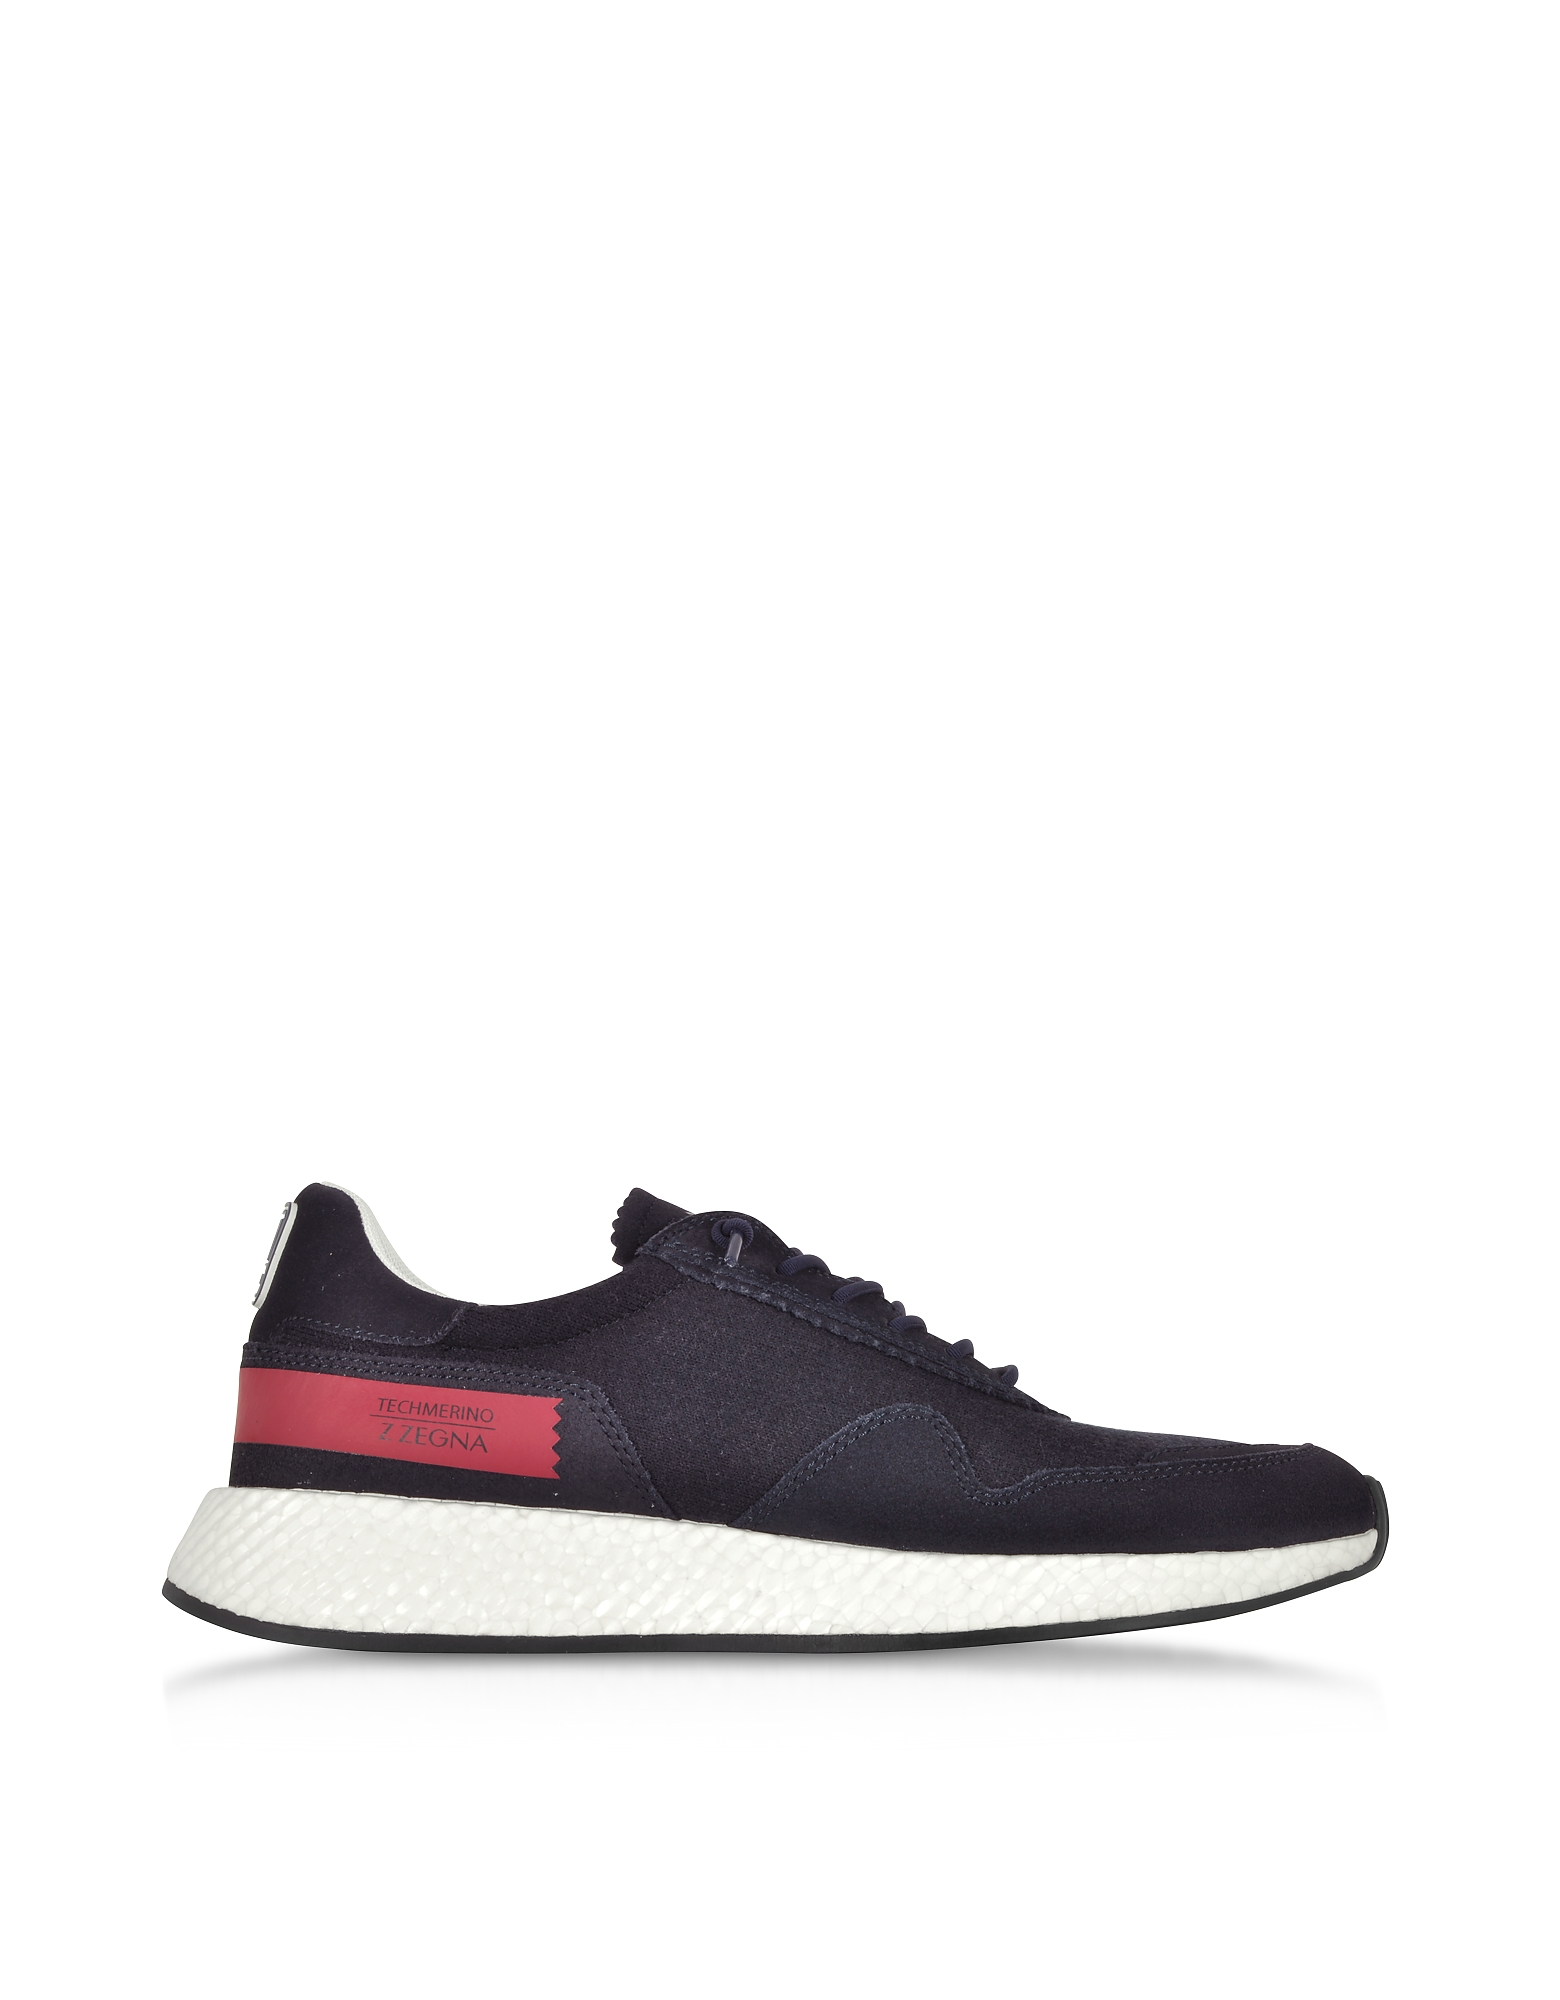 Ermenegildo Zegna Shoes, Navy Blue Techmerino and Suede Men's Sneakers